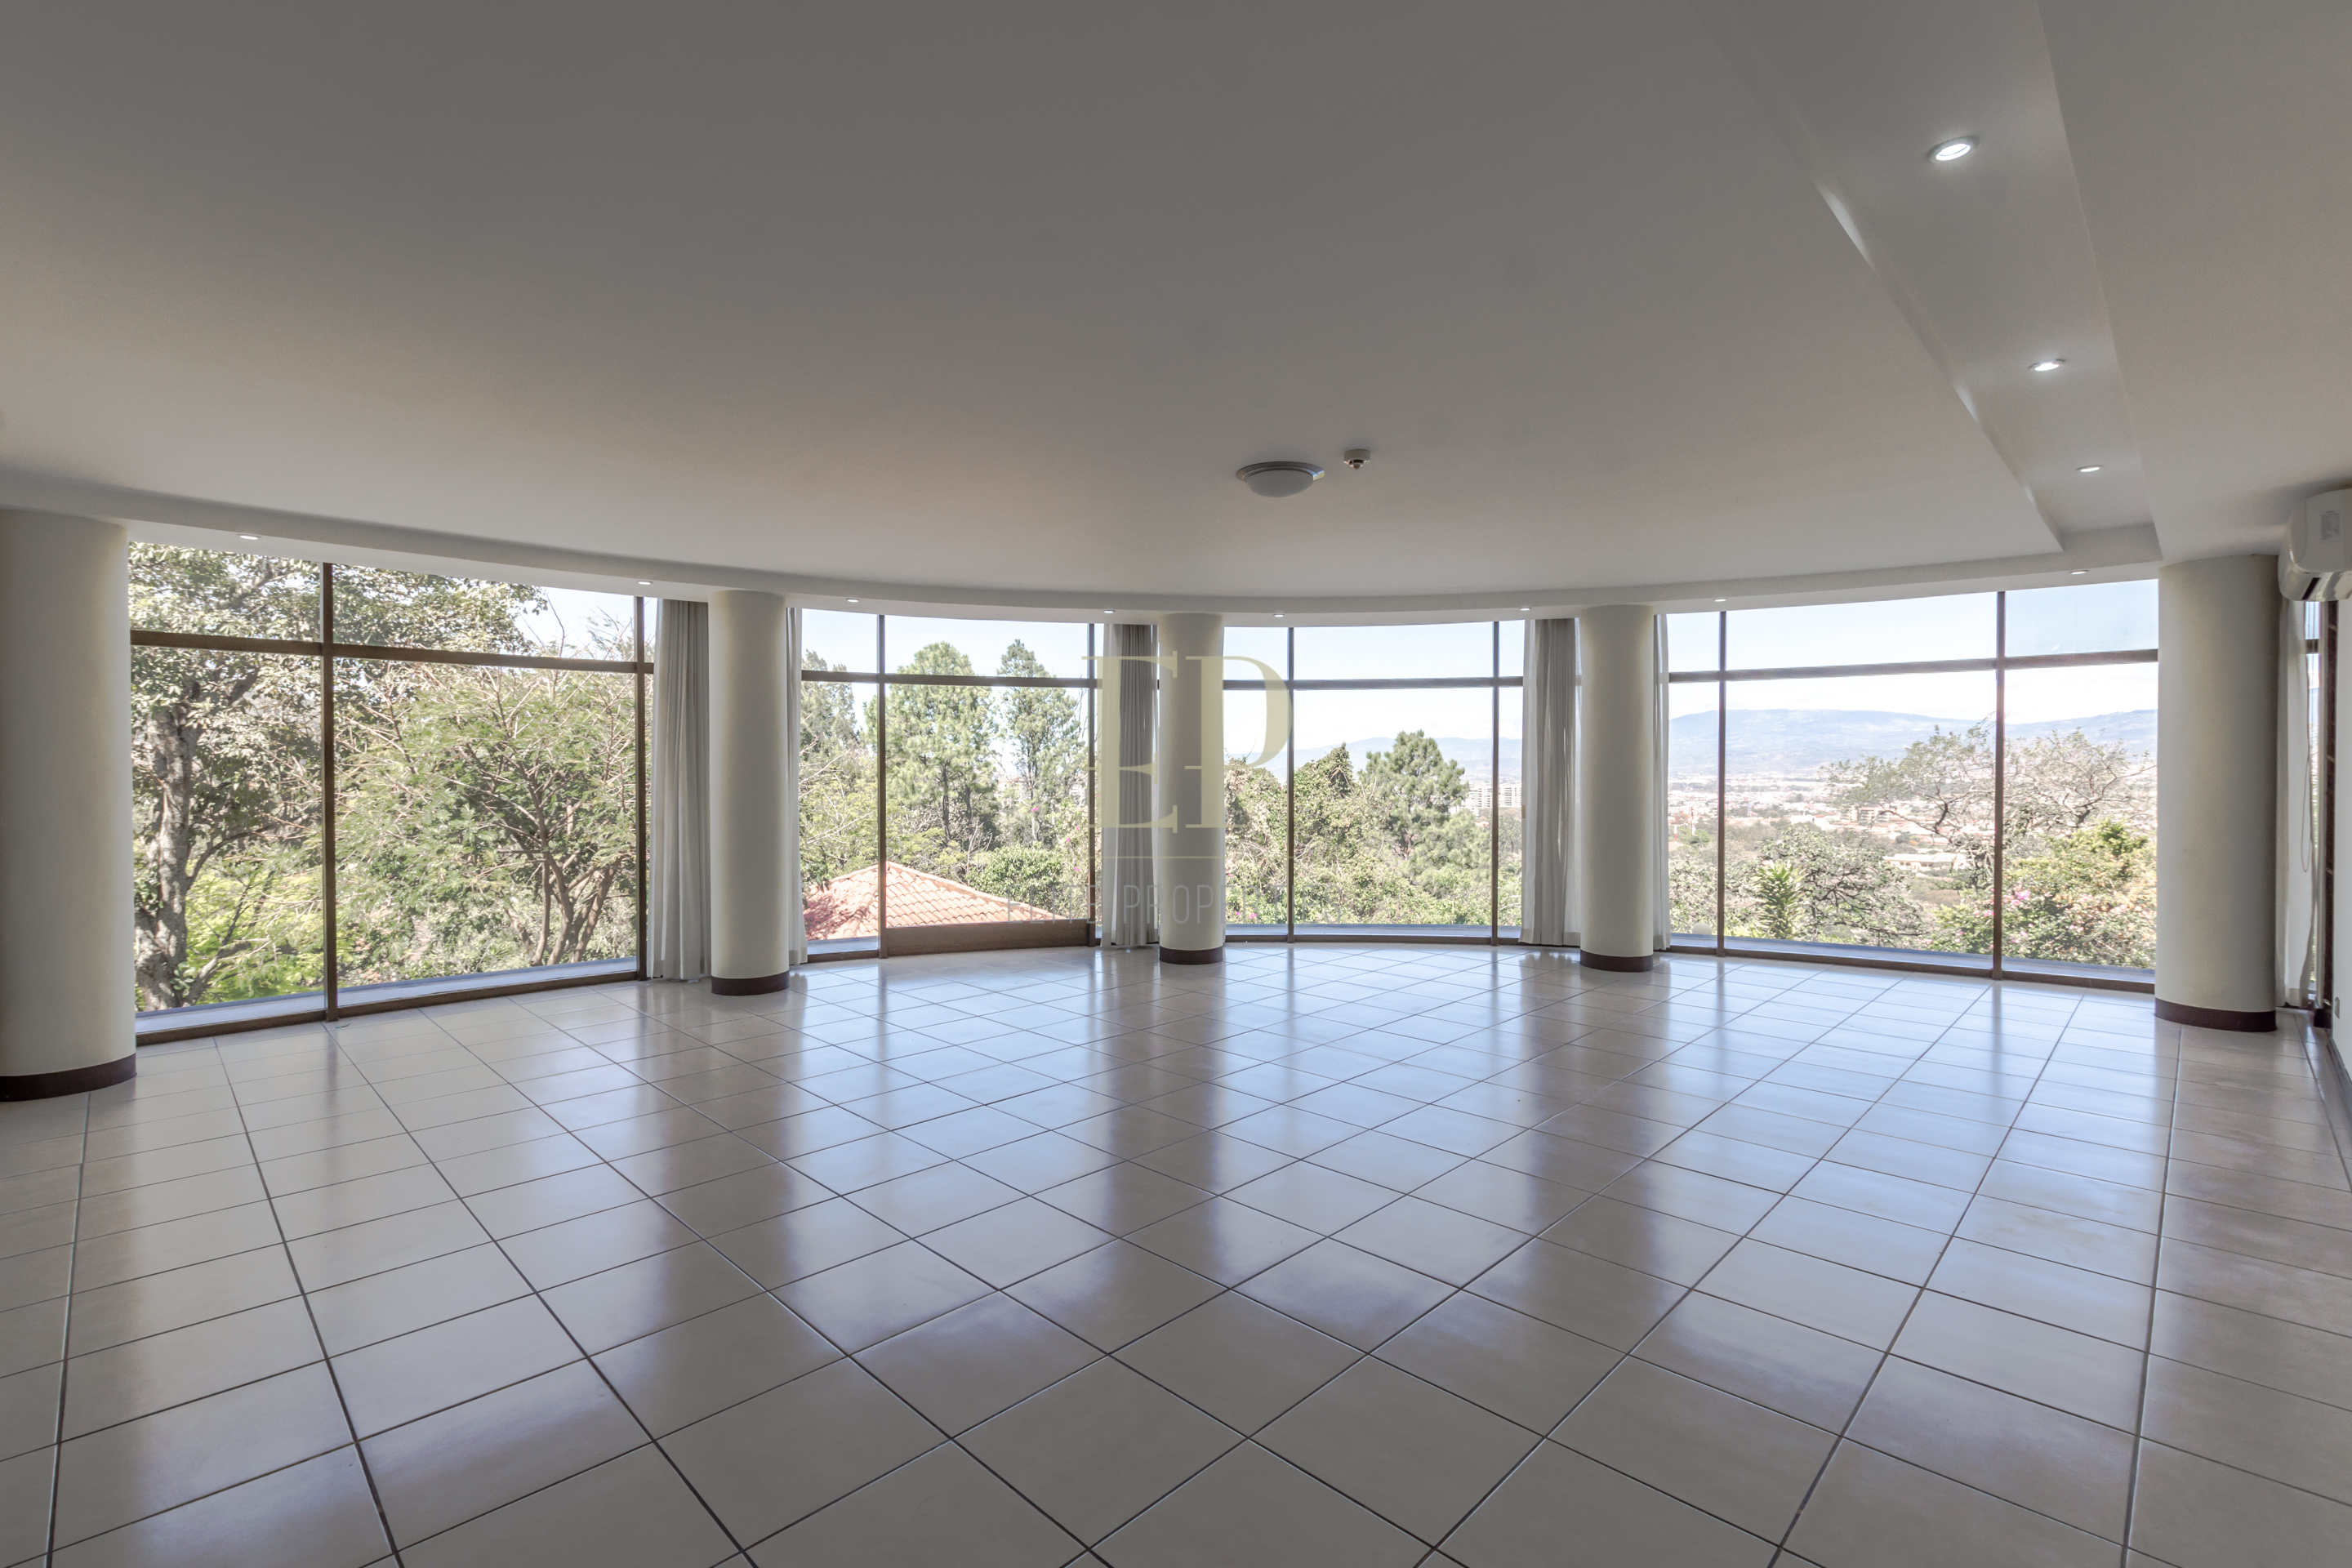 Luxury spacious apartment in Escazu walking distance to bus, Automercado